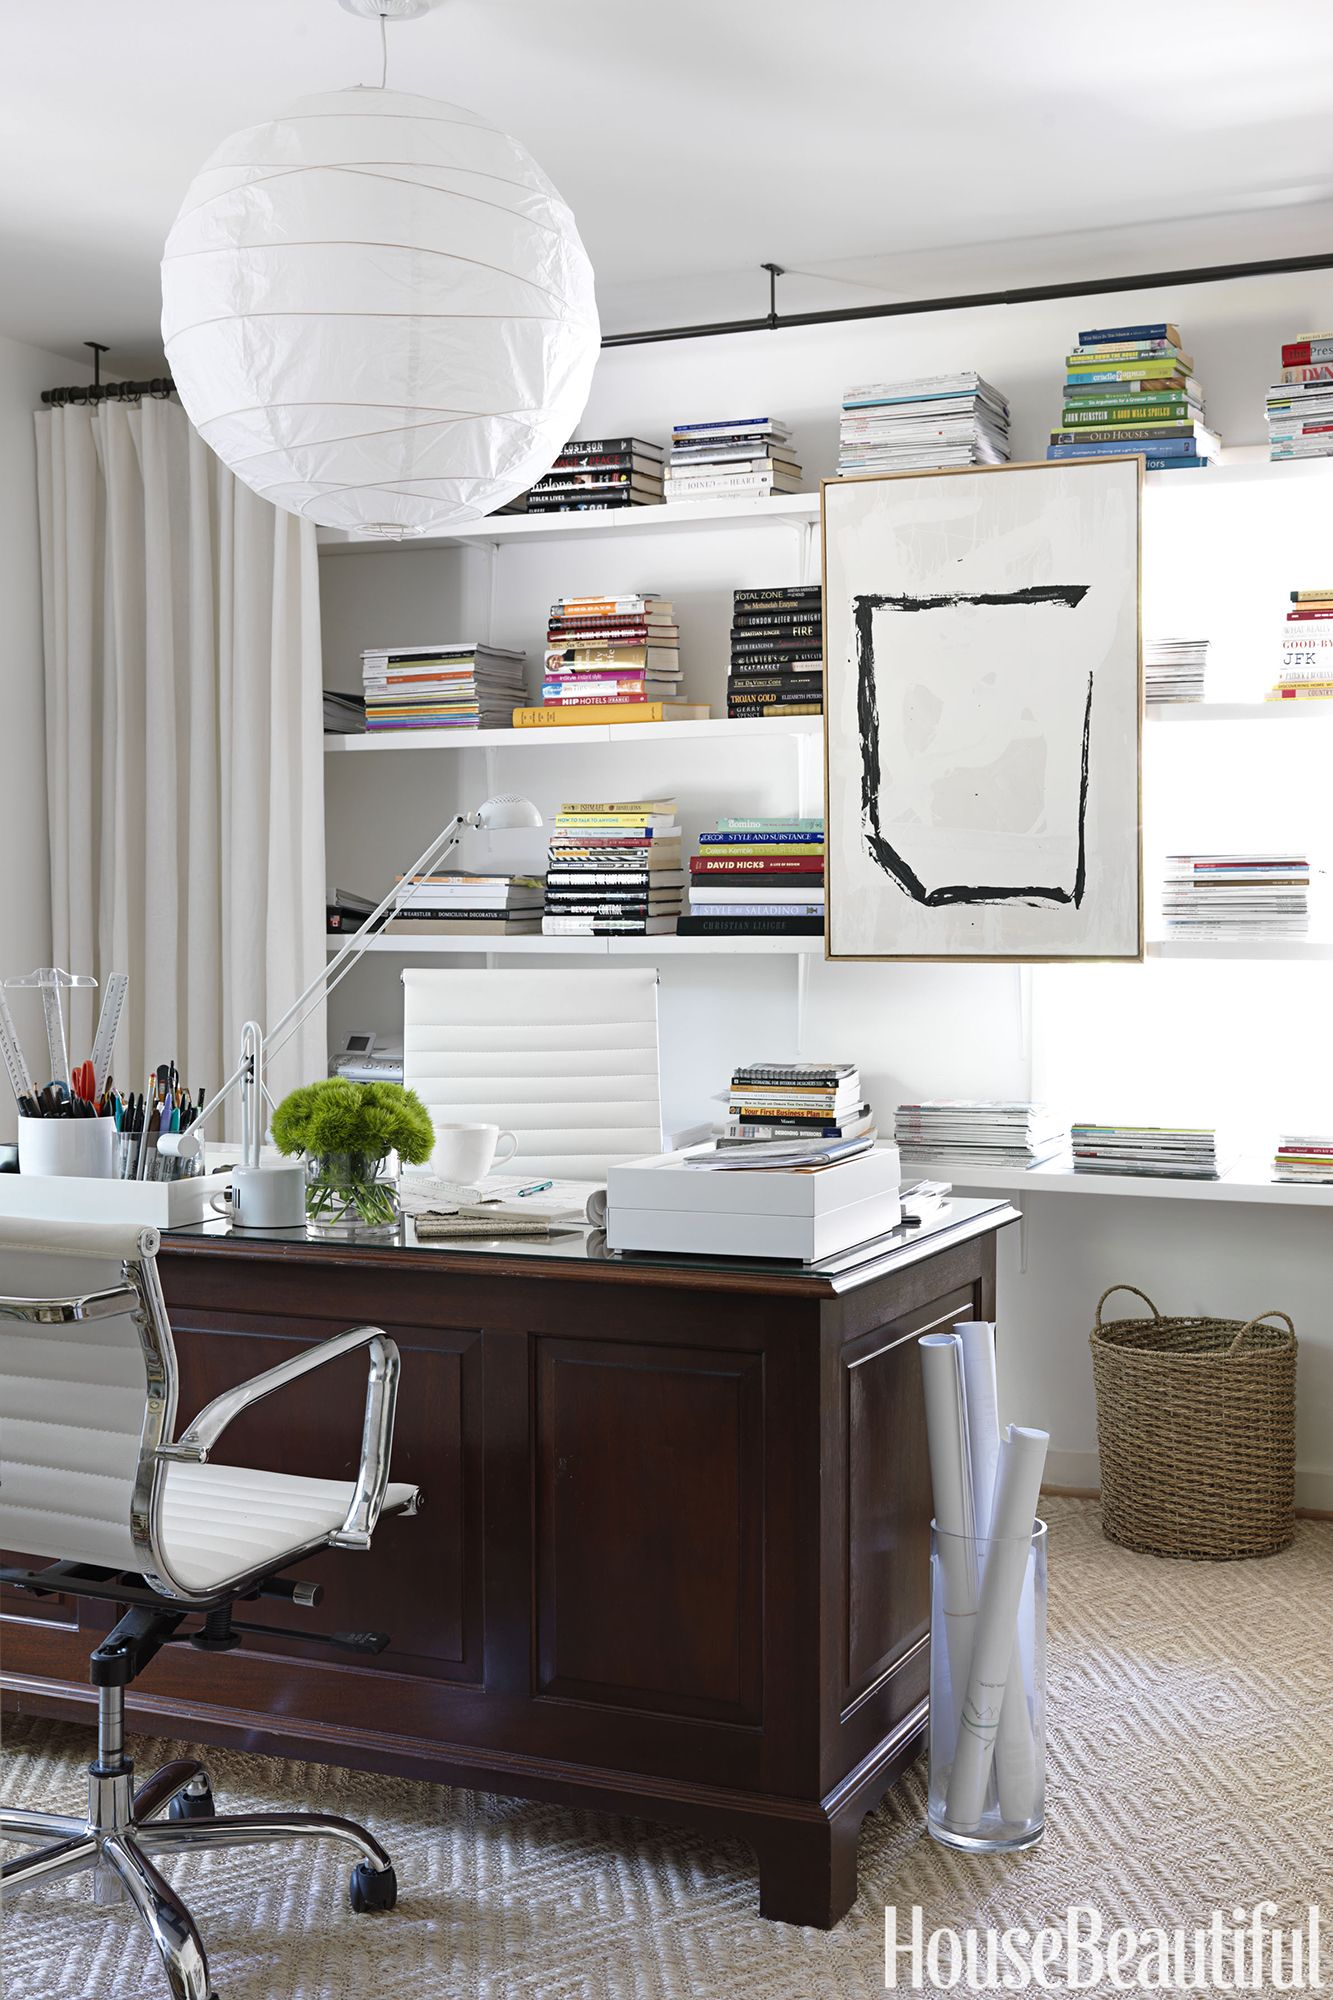 12 Home Office Organization Ideas - How to Organize an Office